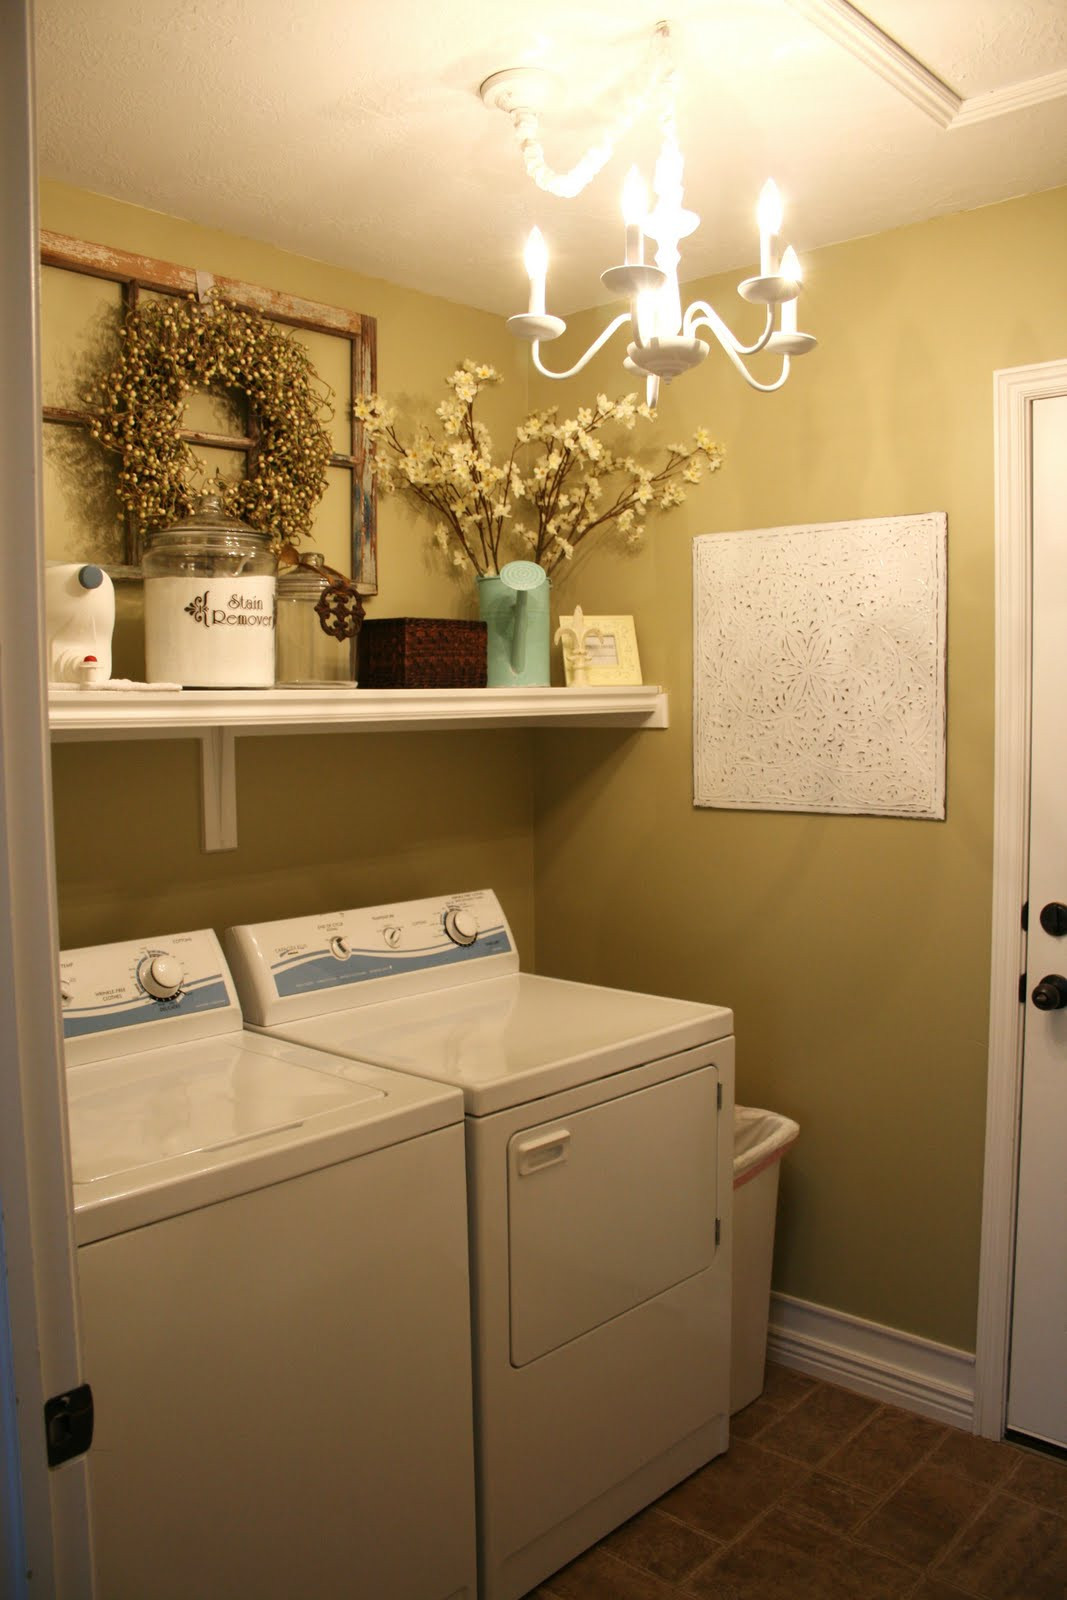 Best ideas about The Laundry Room . Save or Pin Sassy Sites Home Tour the laundry room Now.